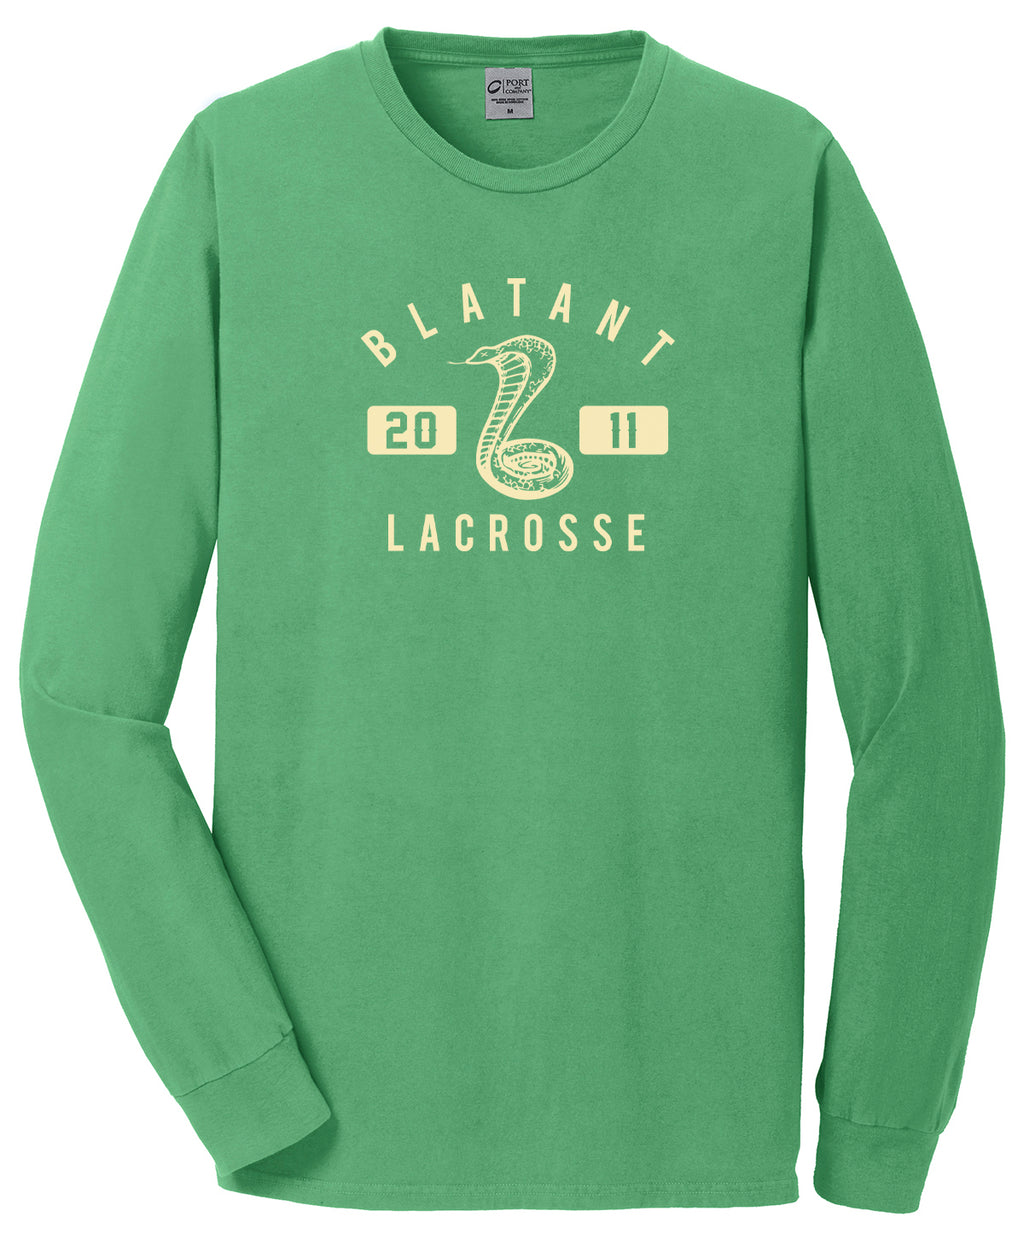 Blatant Lacrosse Cobra Graphic Long Sleeve